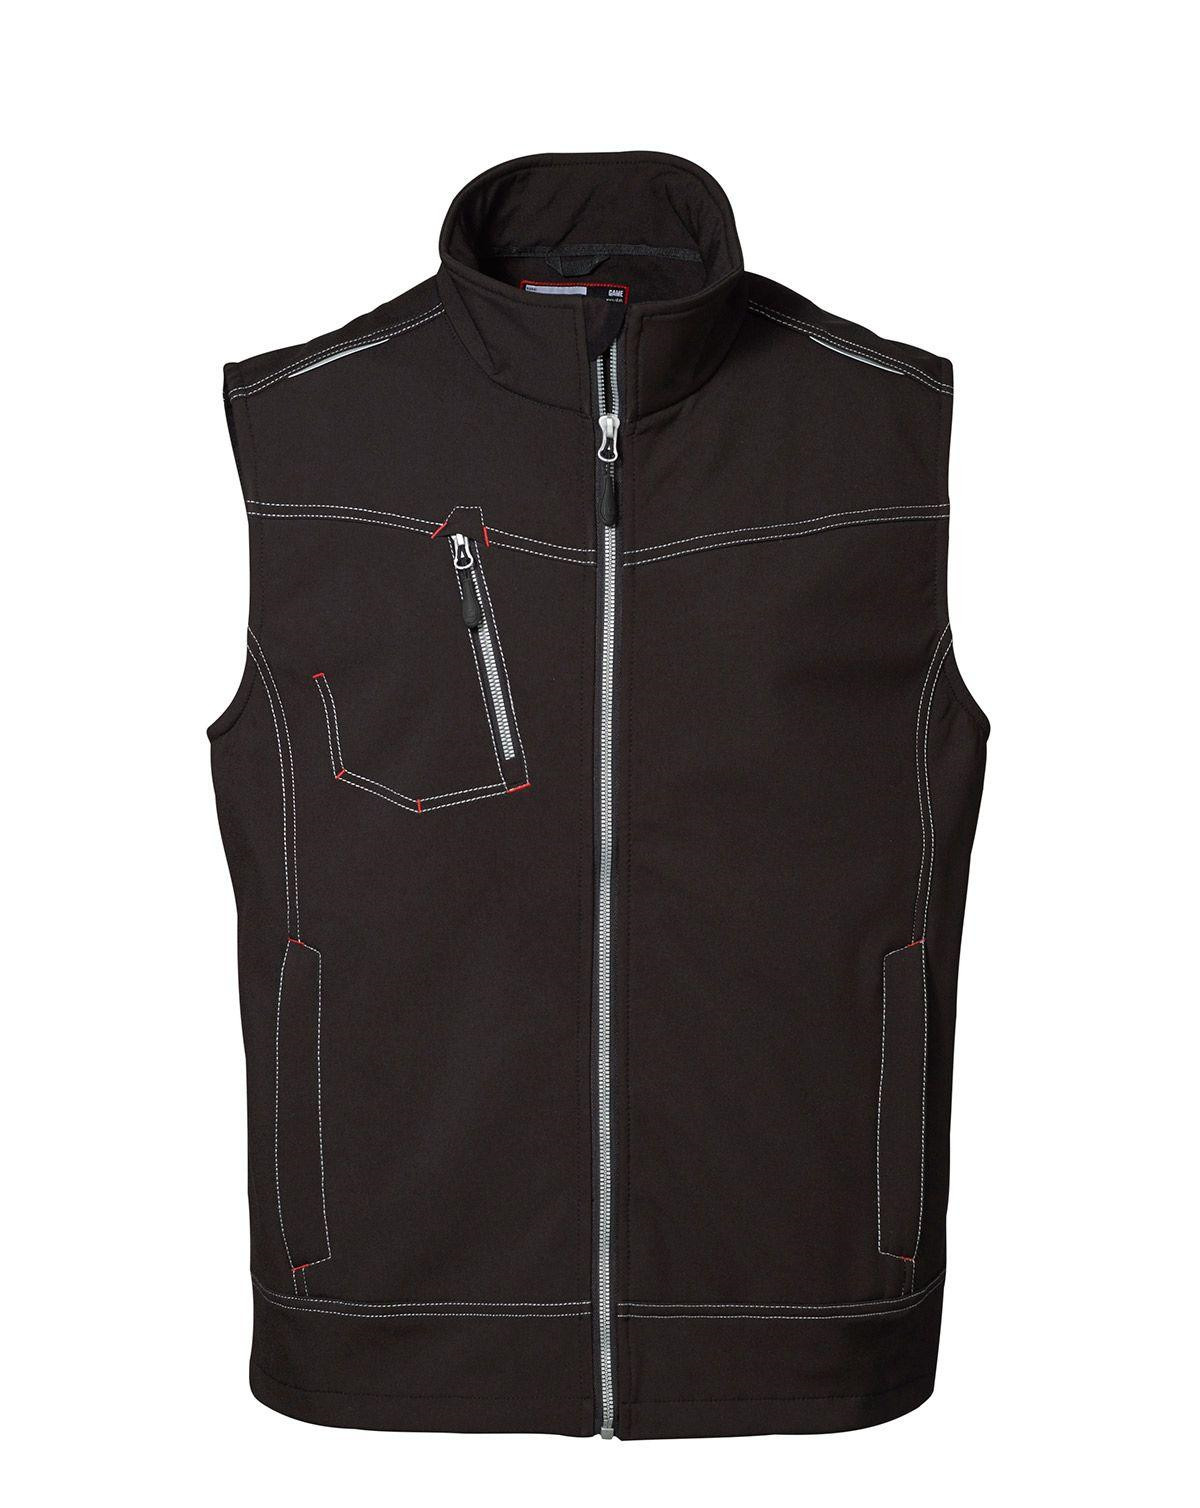 Image of   ID Softshell Vest (Sort, 3XL)